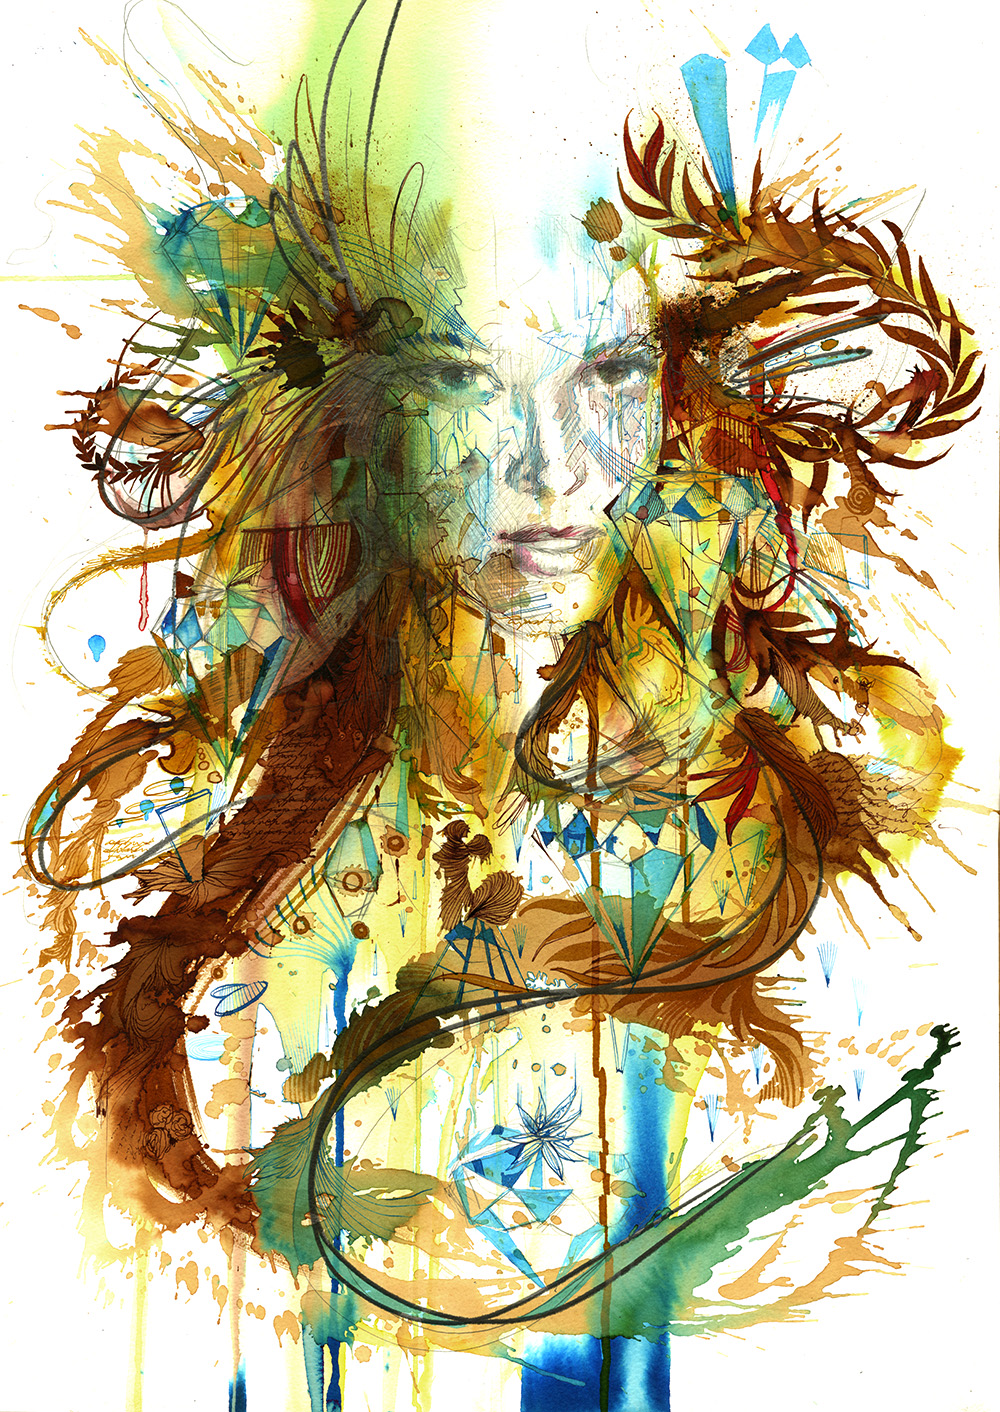 Carne Griffiths - Jewel of the East